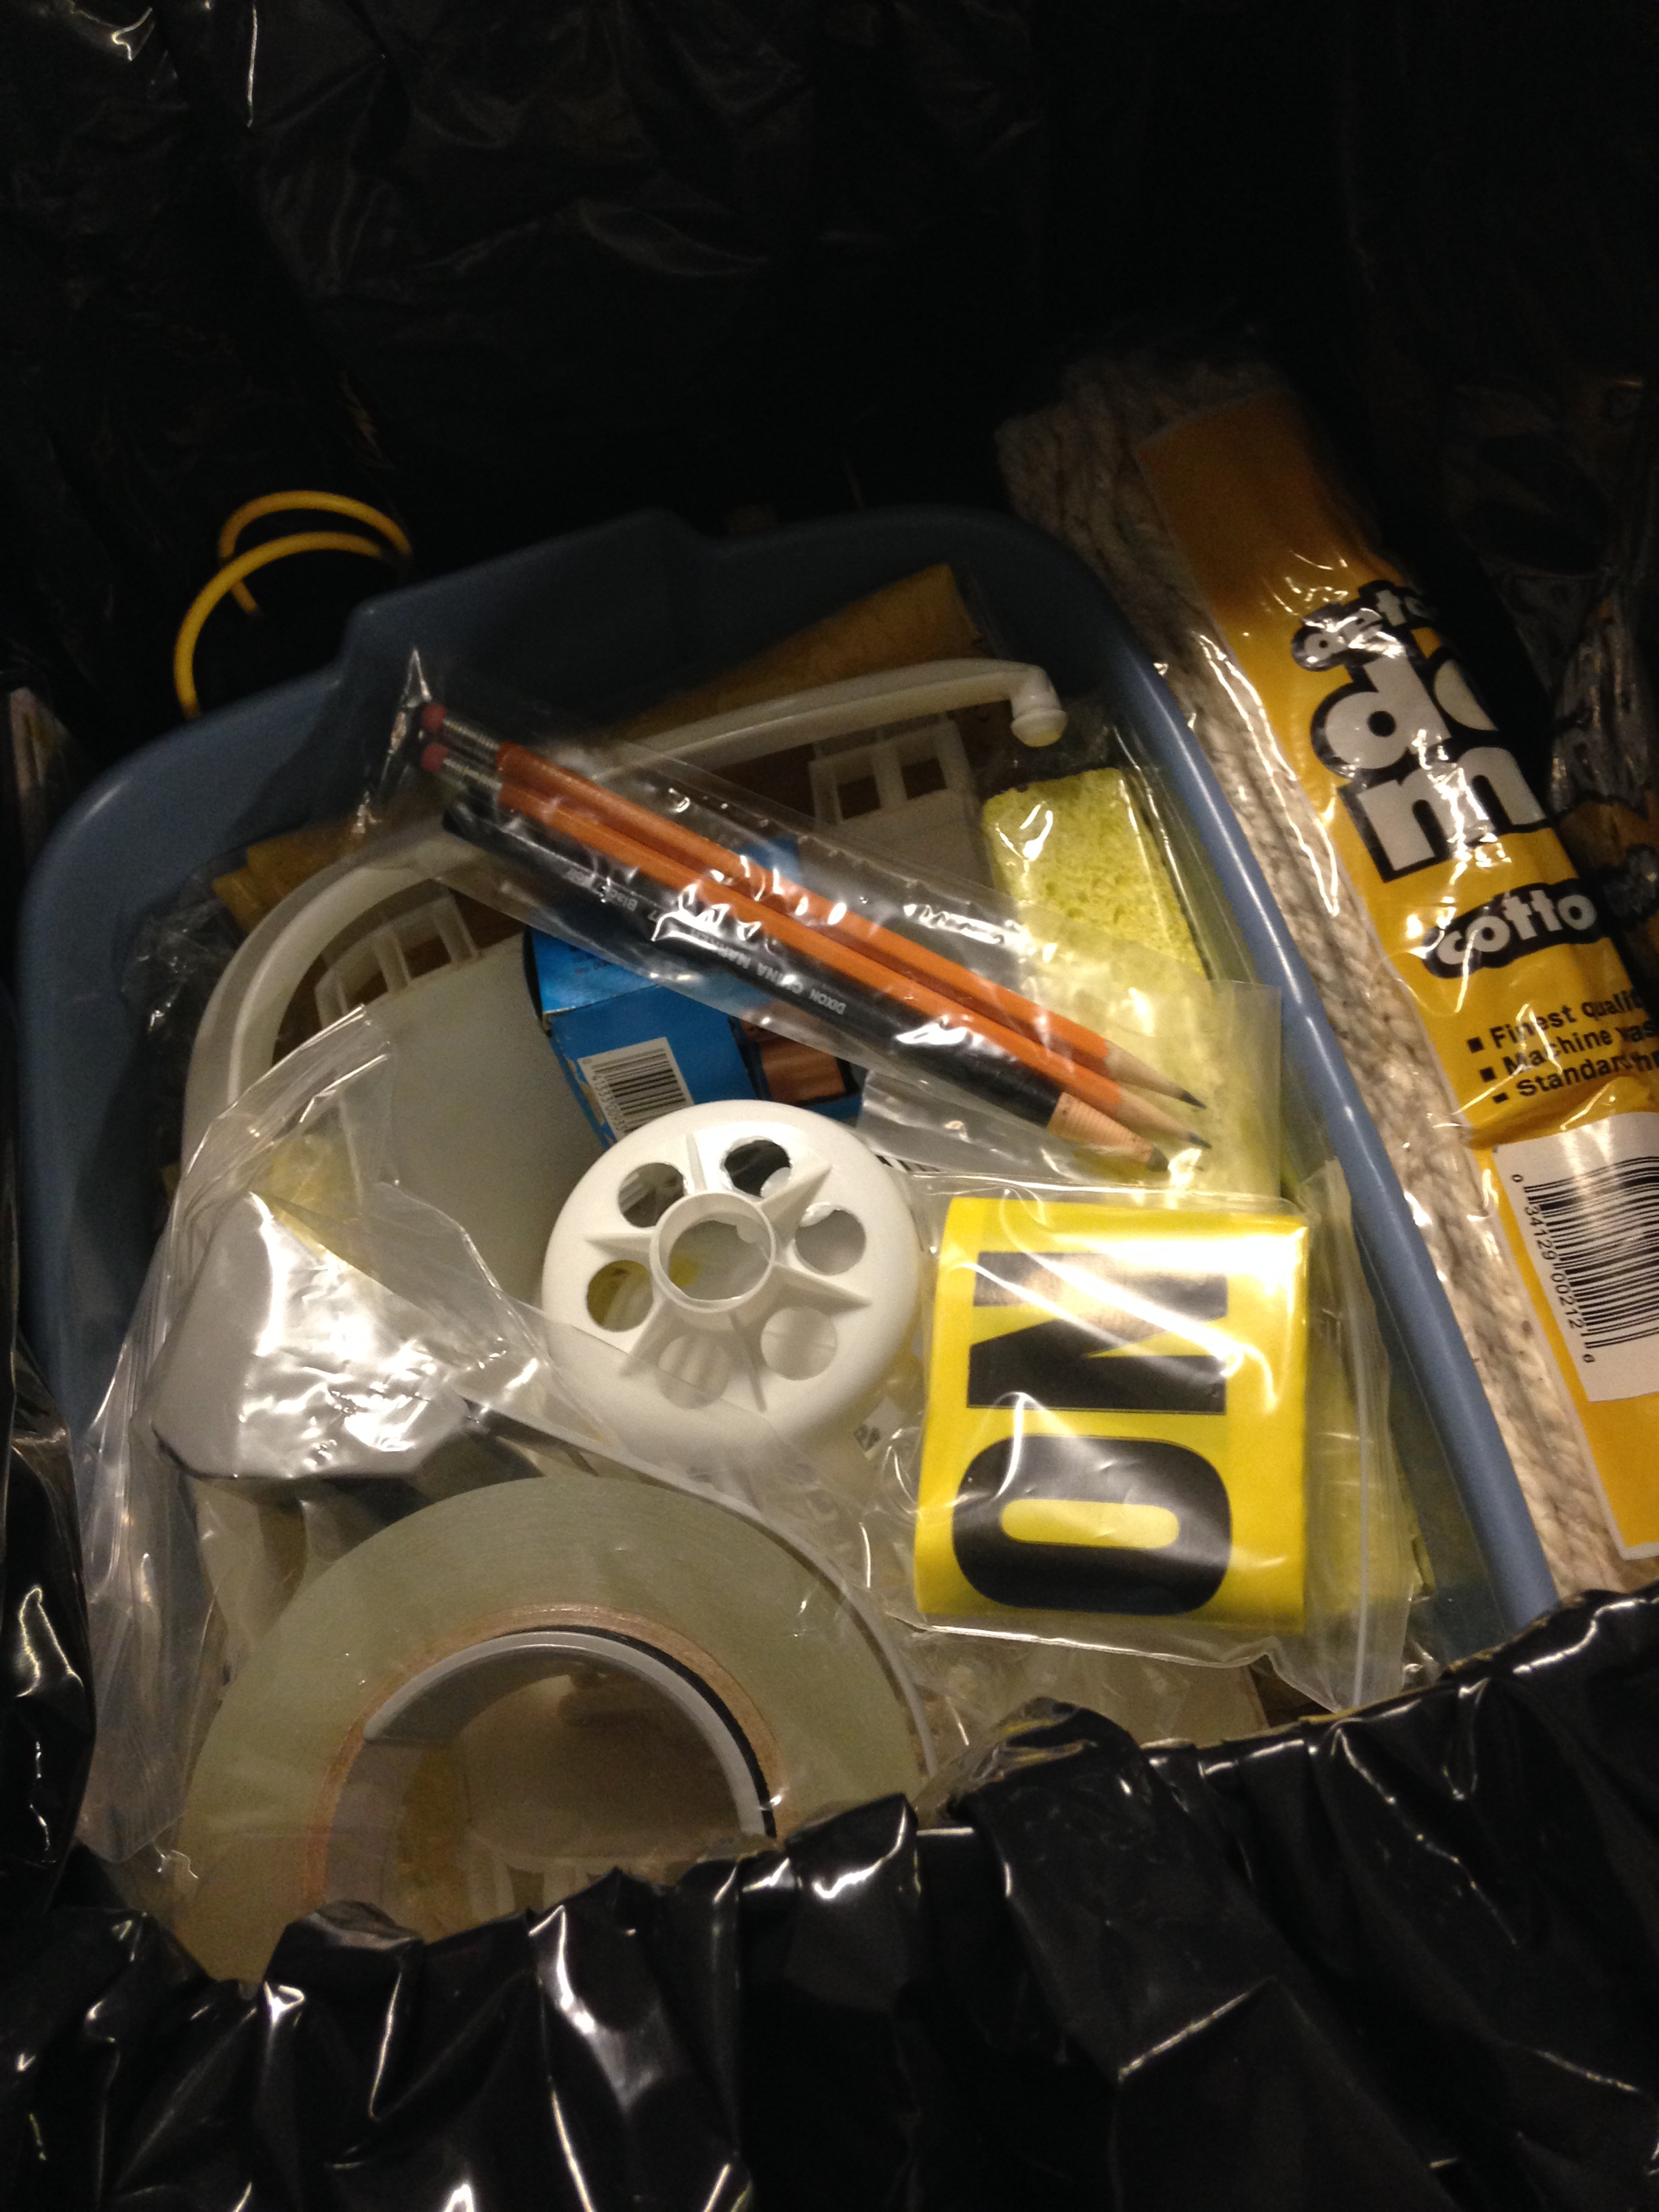 Box containing flashlights, batteries, nitrile gloves, spill pillows, absorbent paper, clipboards, p